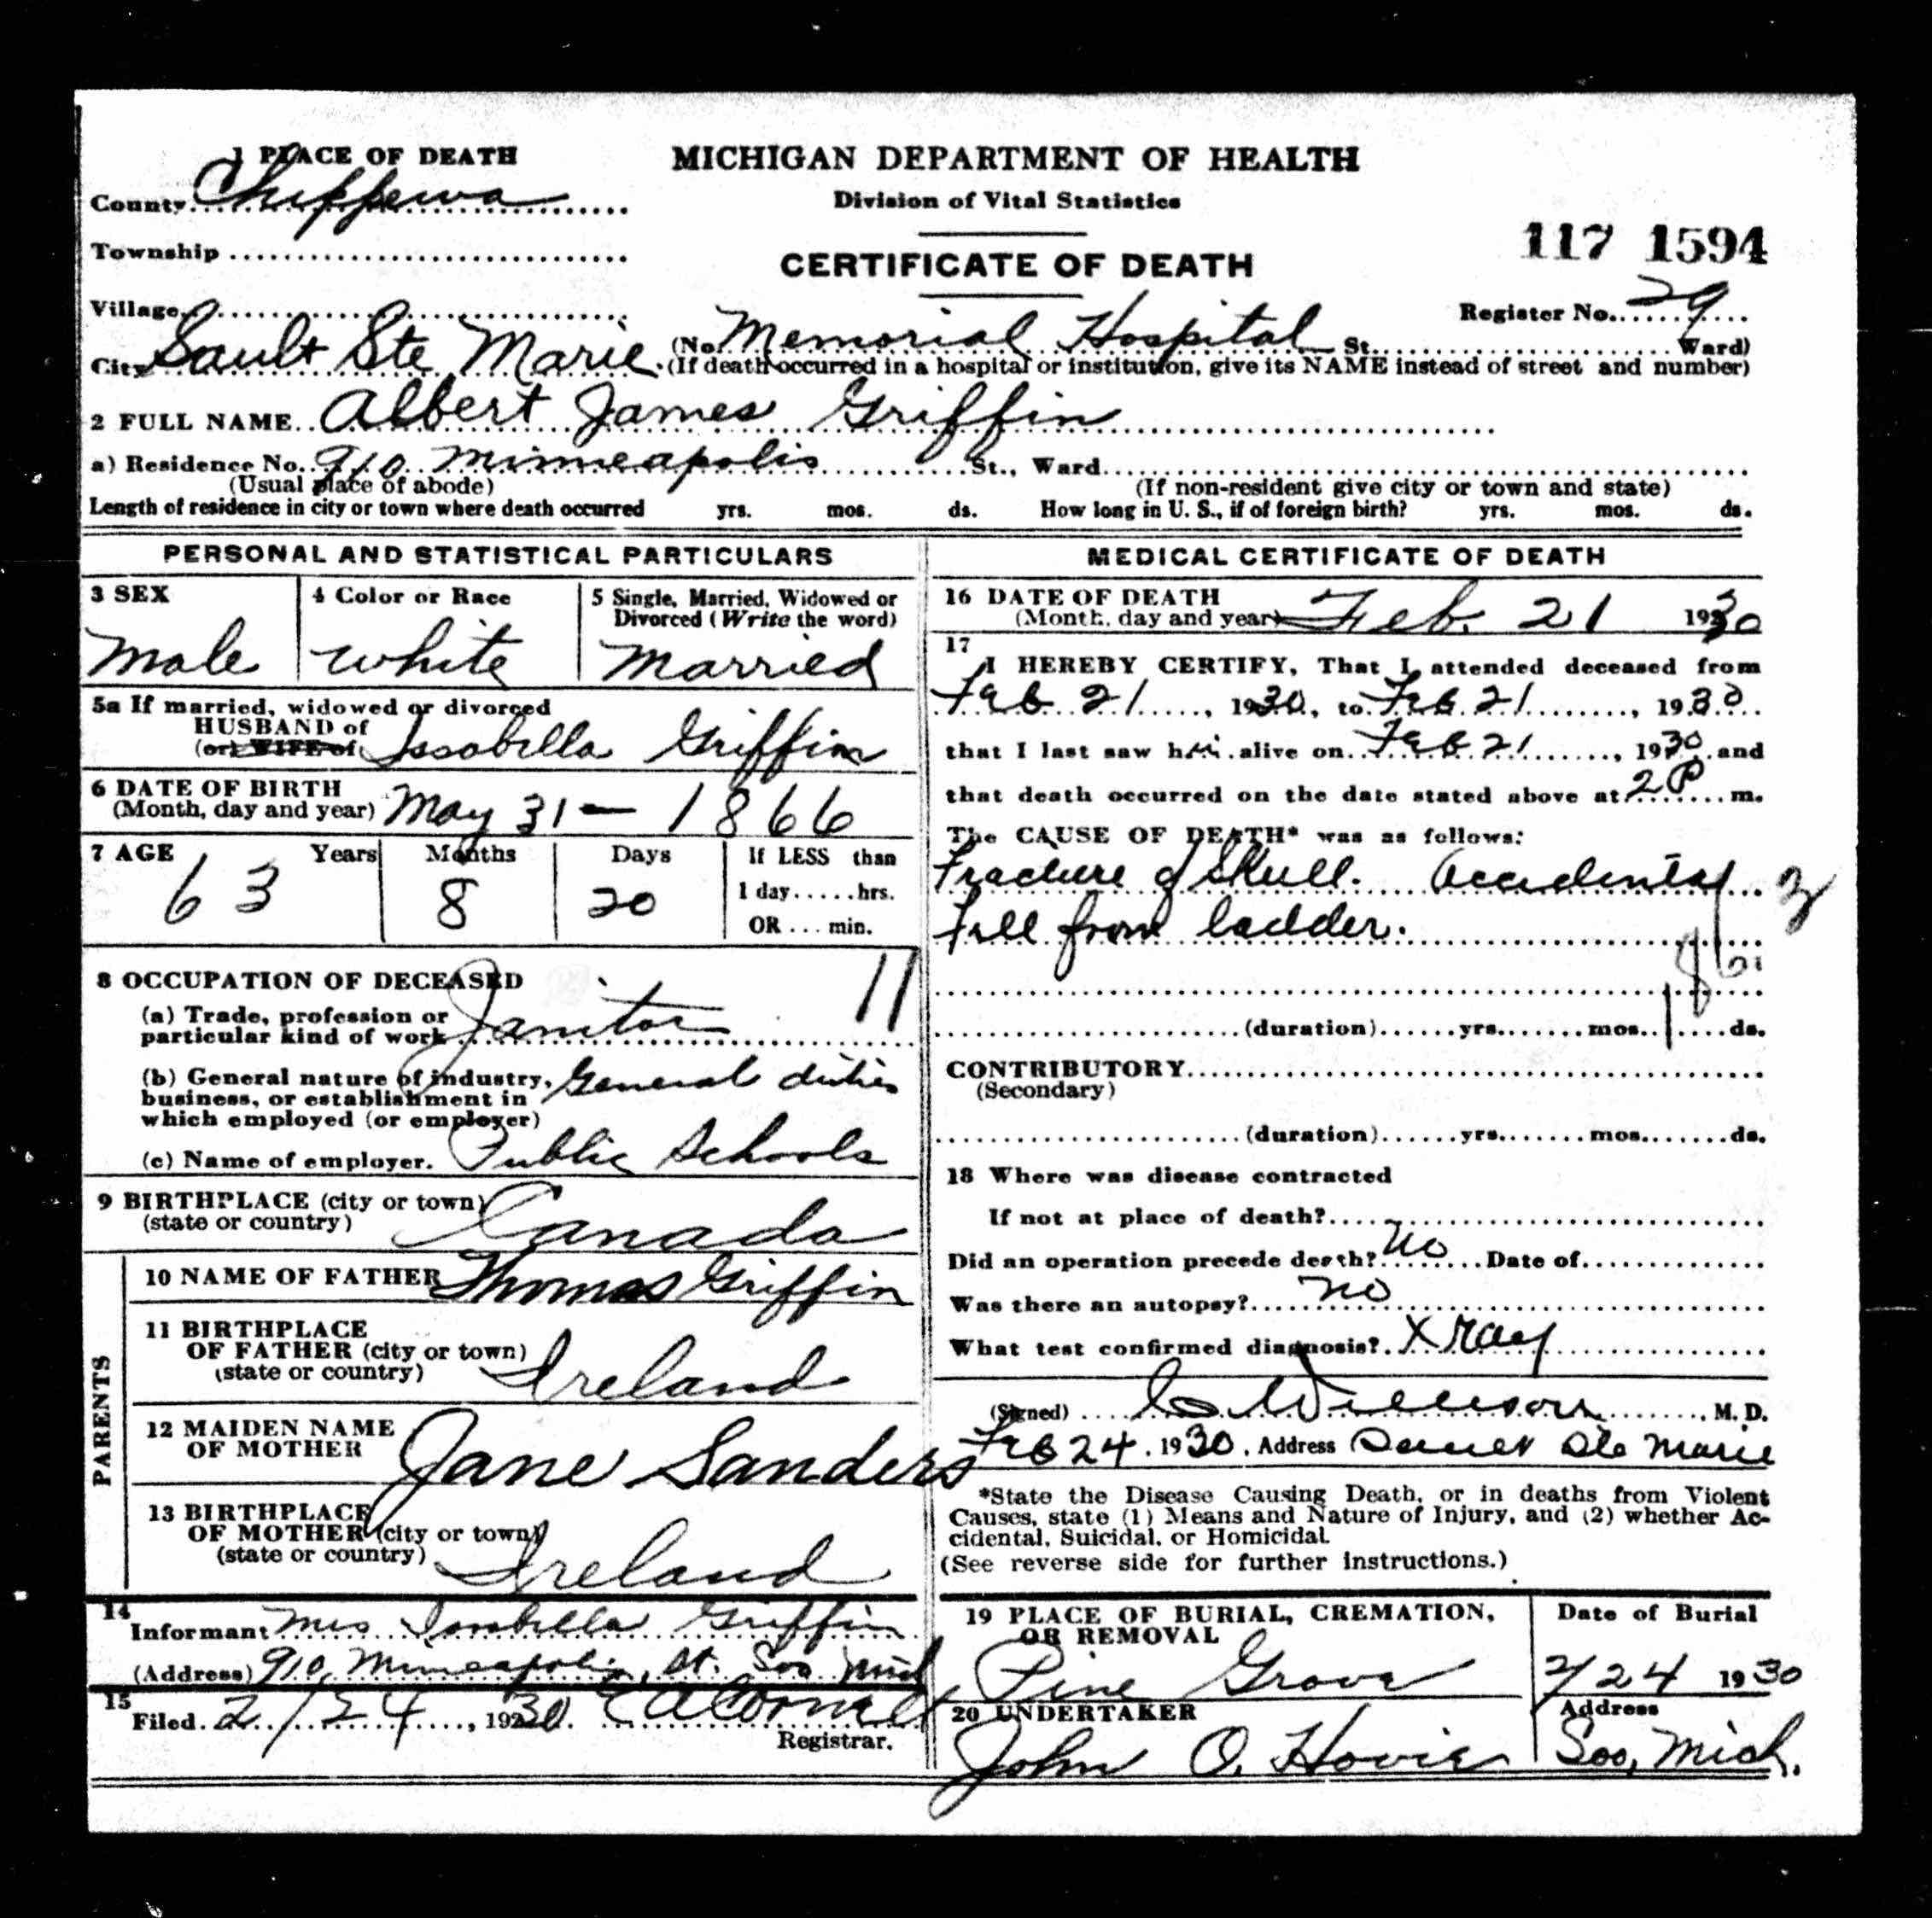 Albert James Griffin Death Certificate